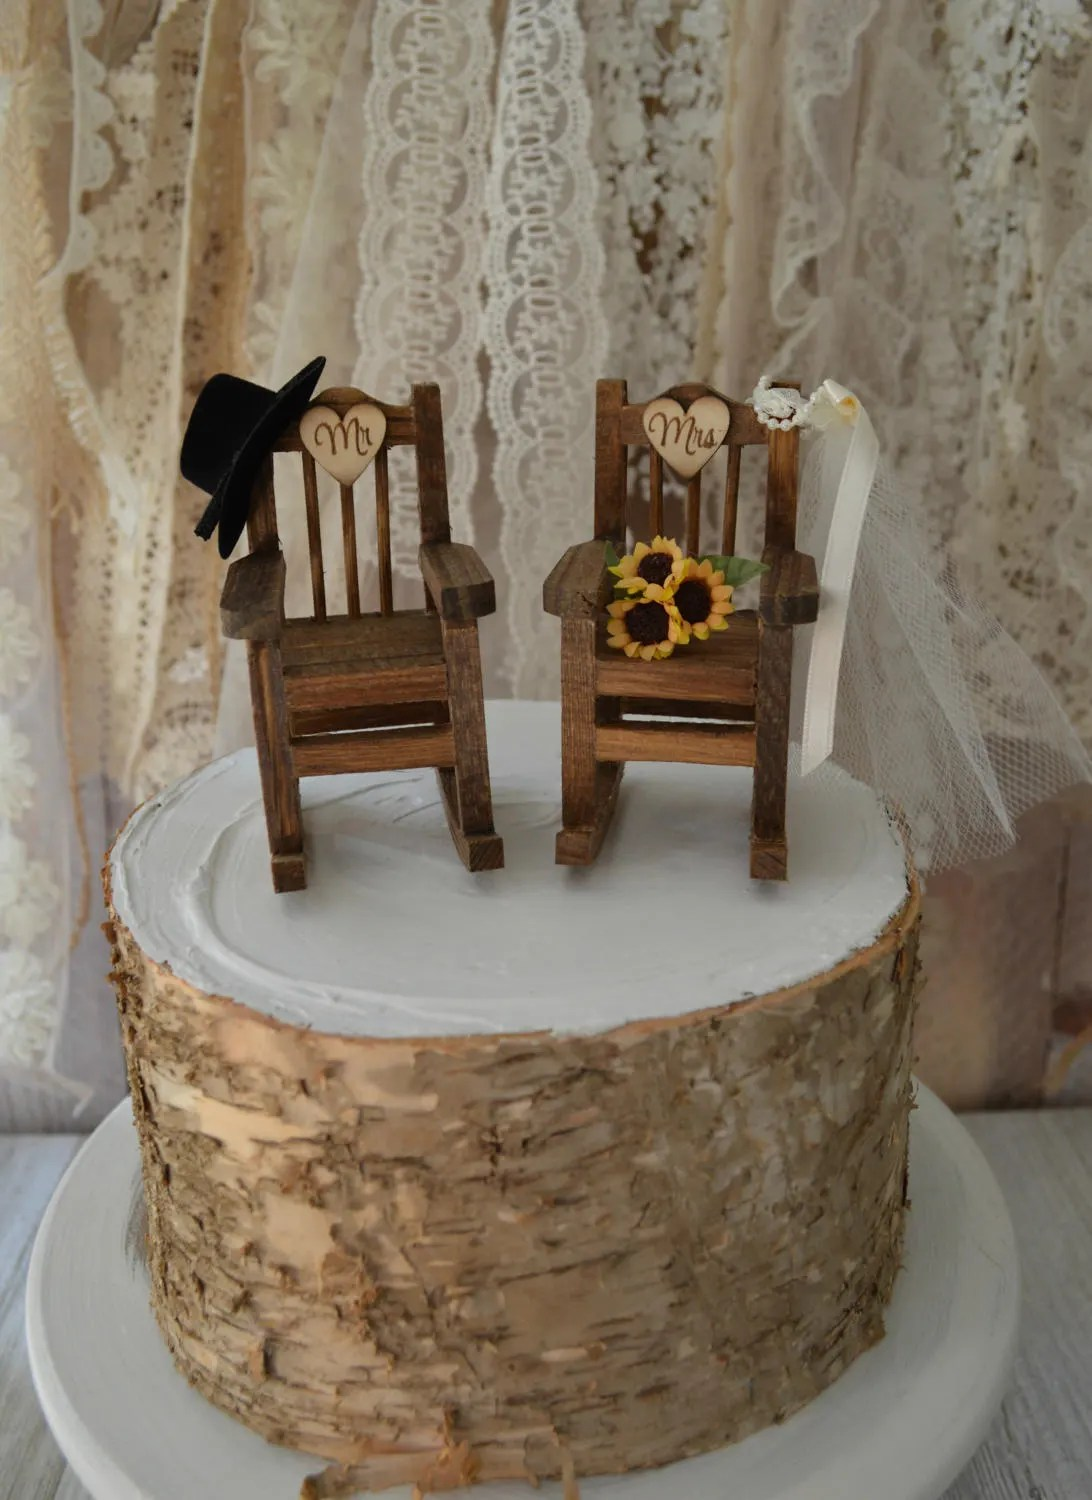 wedding wooden chairs bamboo style dining rocking chair cake topper country weddings rustic